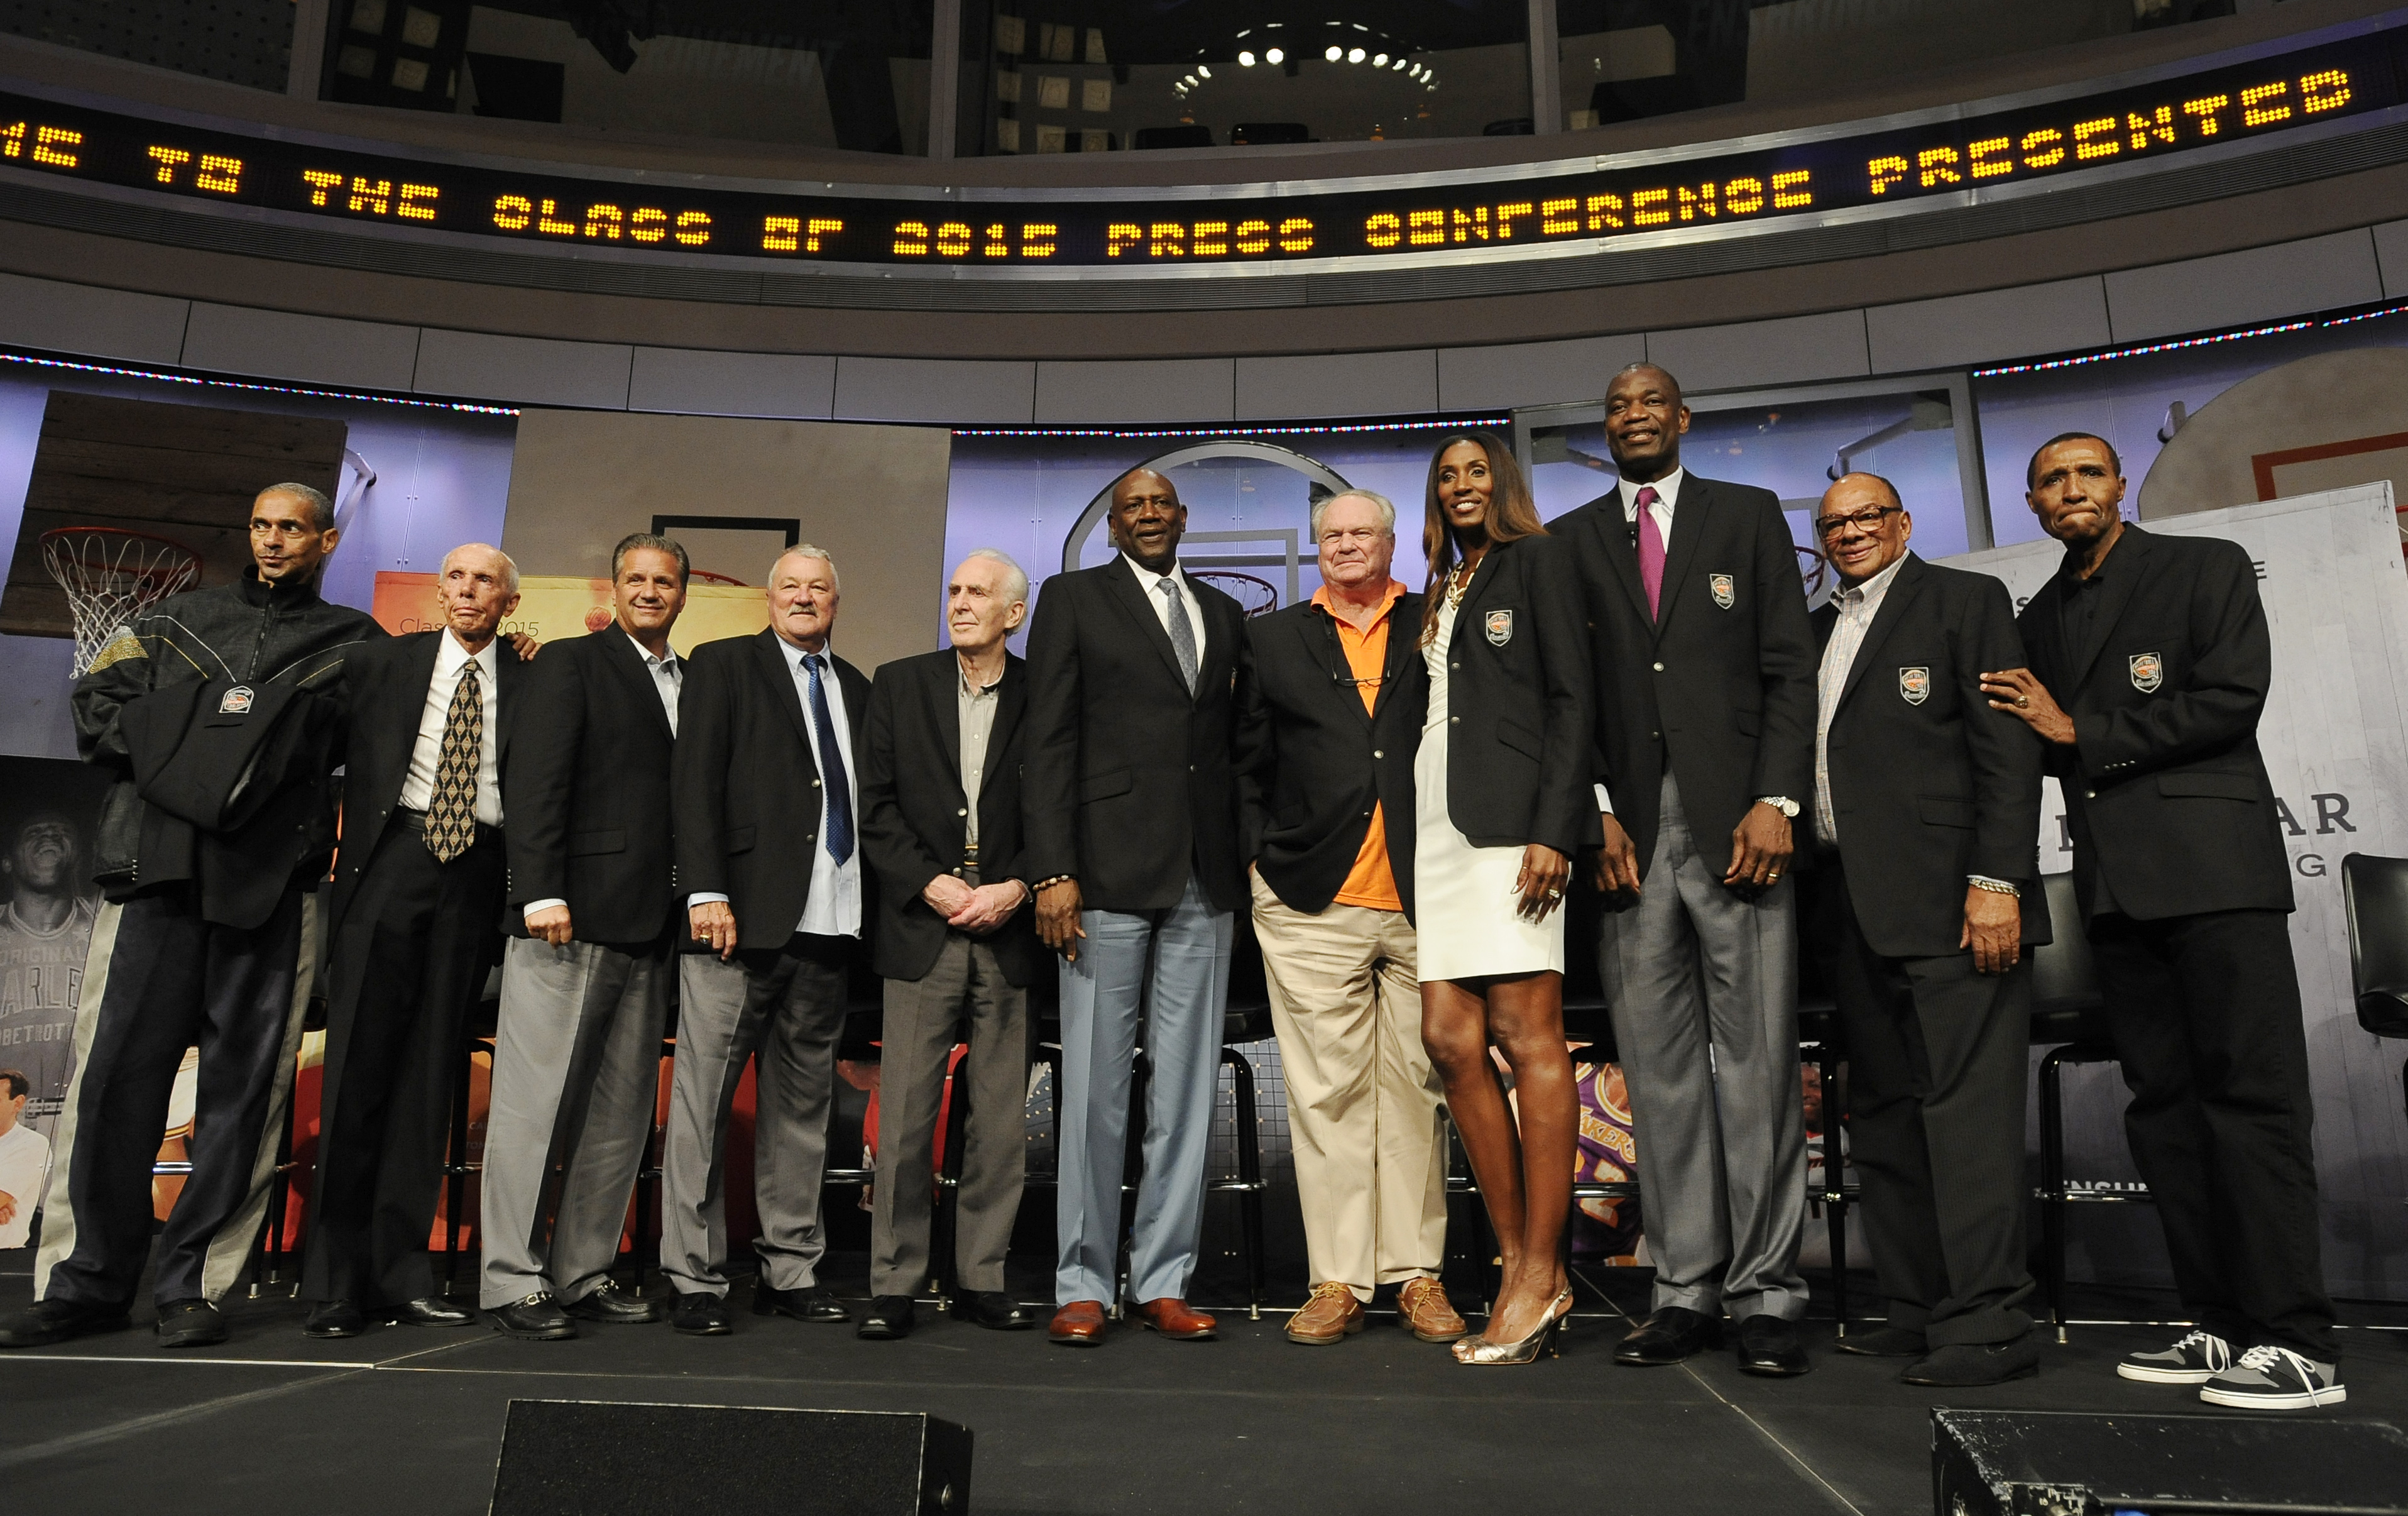 The 2015 class of inductees into the Basketball Hall of Fame, from the left, Alex Isaacs, accepting on behalf of his father John Isaacs, Dick Bavetta, John Calipari, Louis Dampier, Lindsay Gaze, Spencer Haywood, Tom Heinsohn, Lisa Leslie, Dikembe Mutombo,